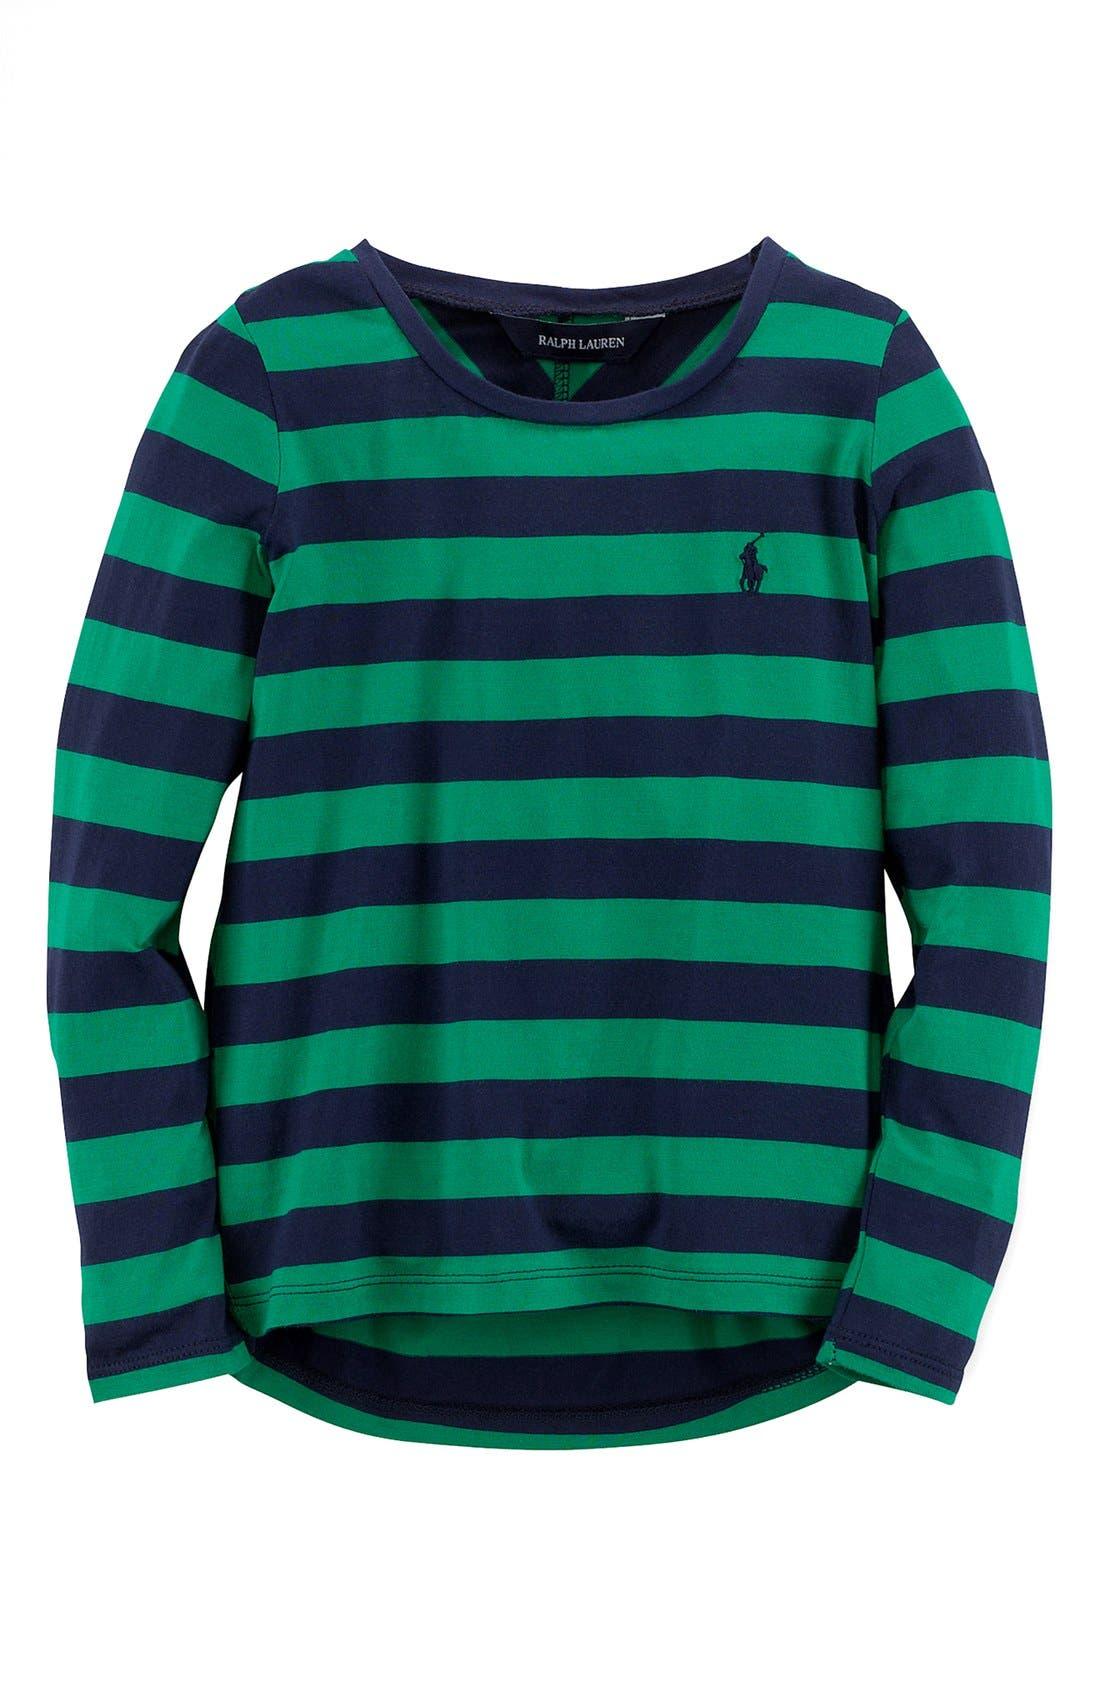 Alternate Image 1 Selected - Ralph Lauren Jersey Top (Toddler Girls)